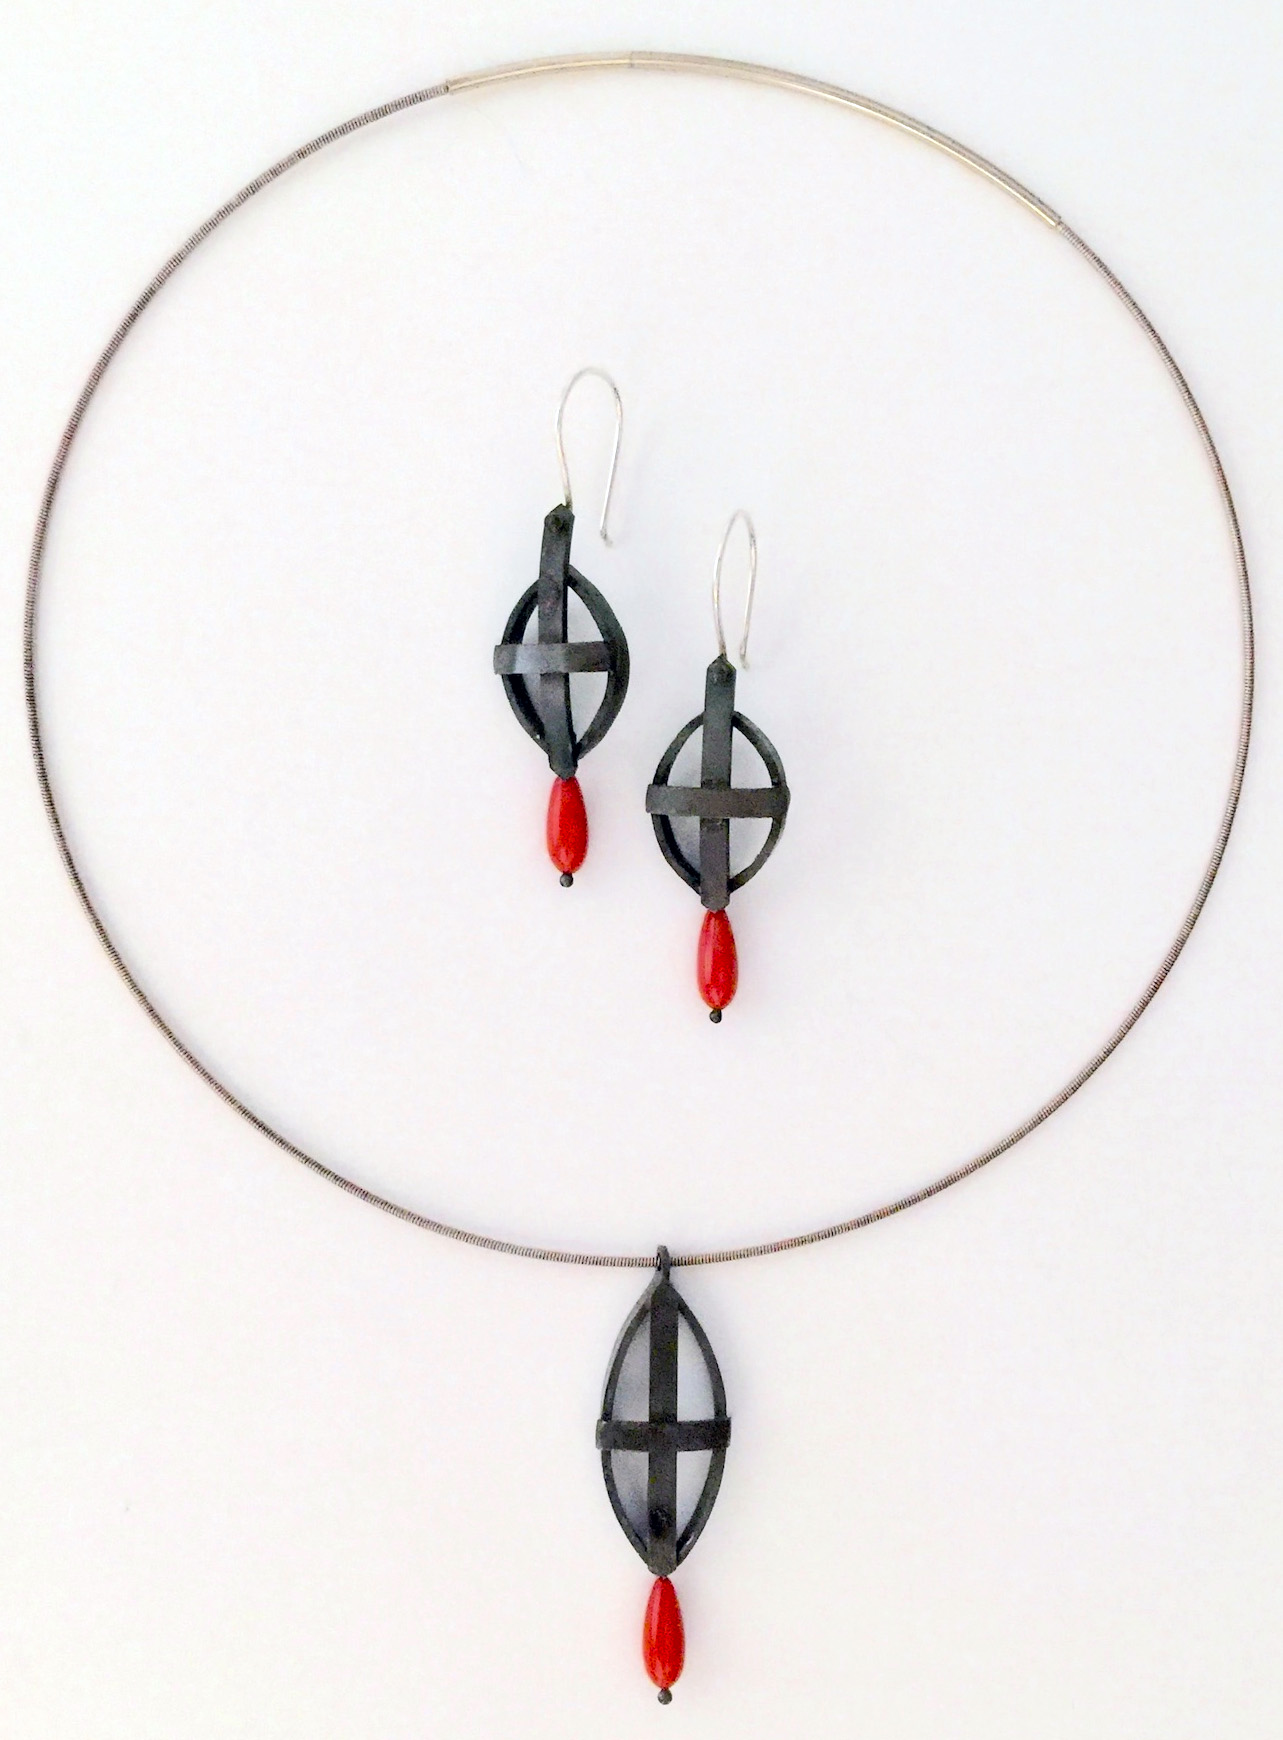 Yuko Suga • Bound • Sterling silver, coral, stainless steel cord • $470